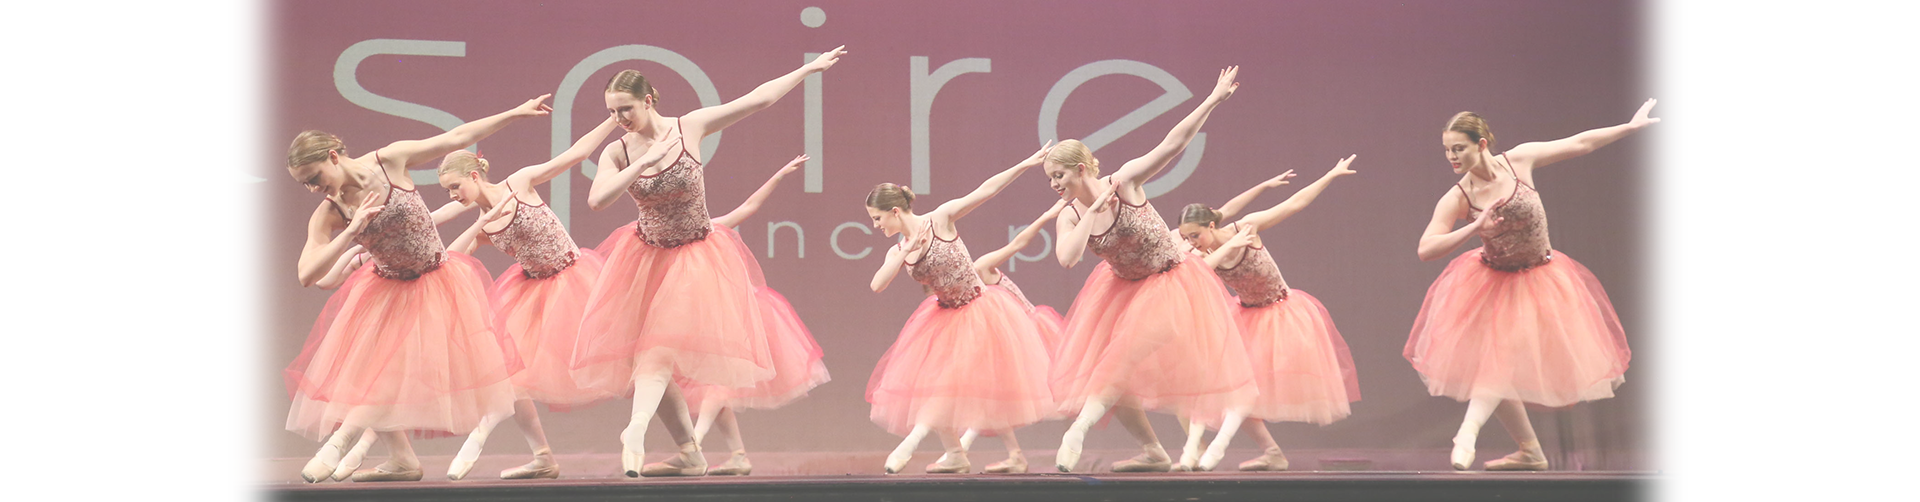 C & C Ballet at Aspire Dance Pro Competitions